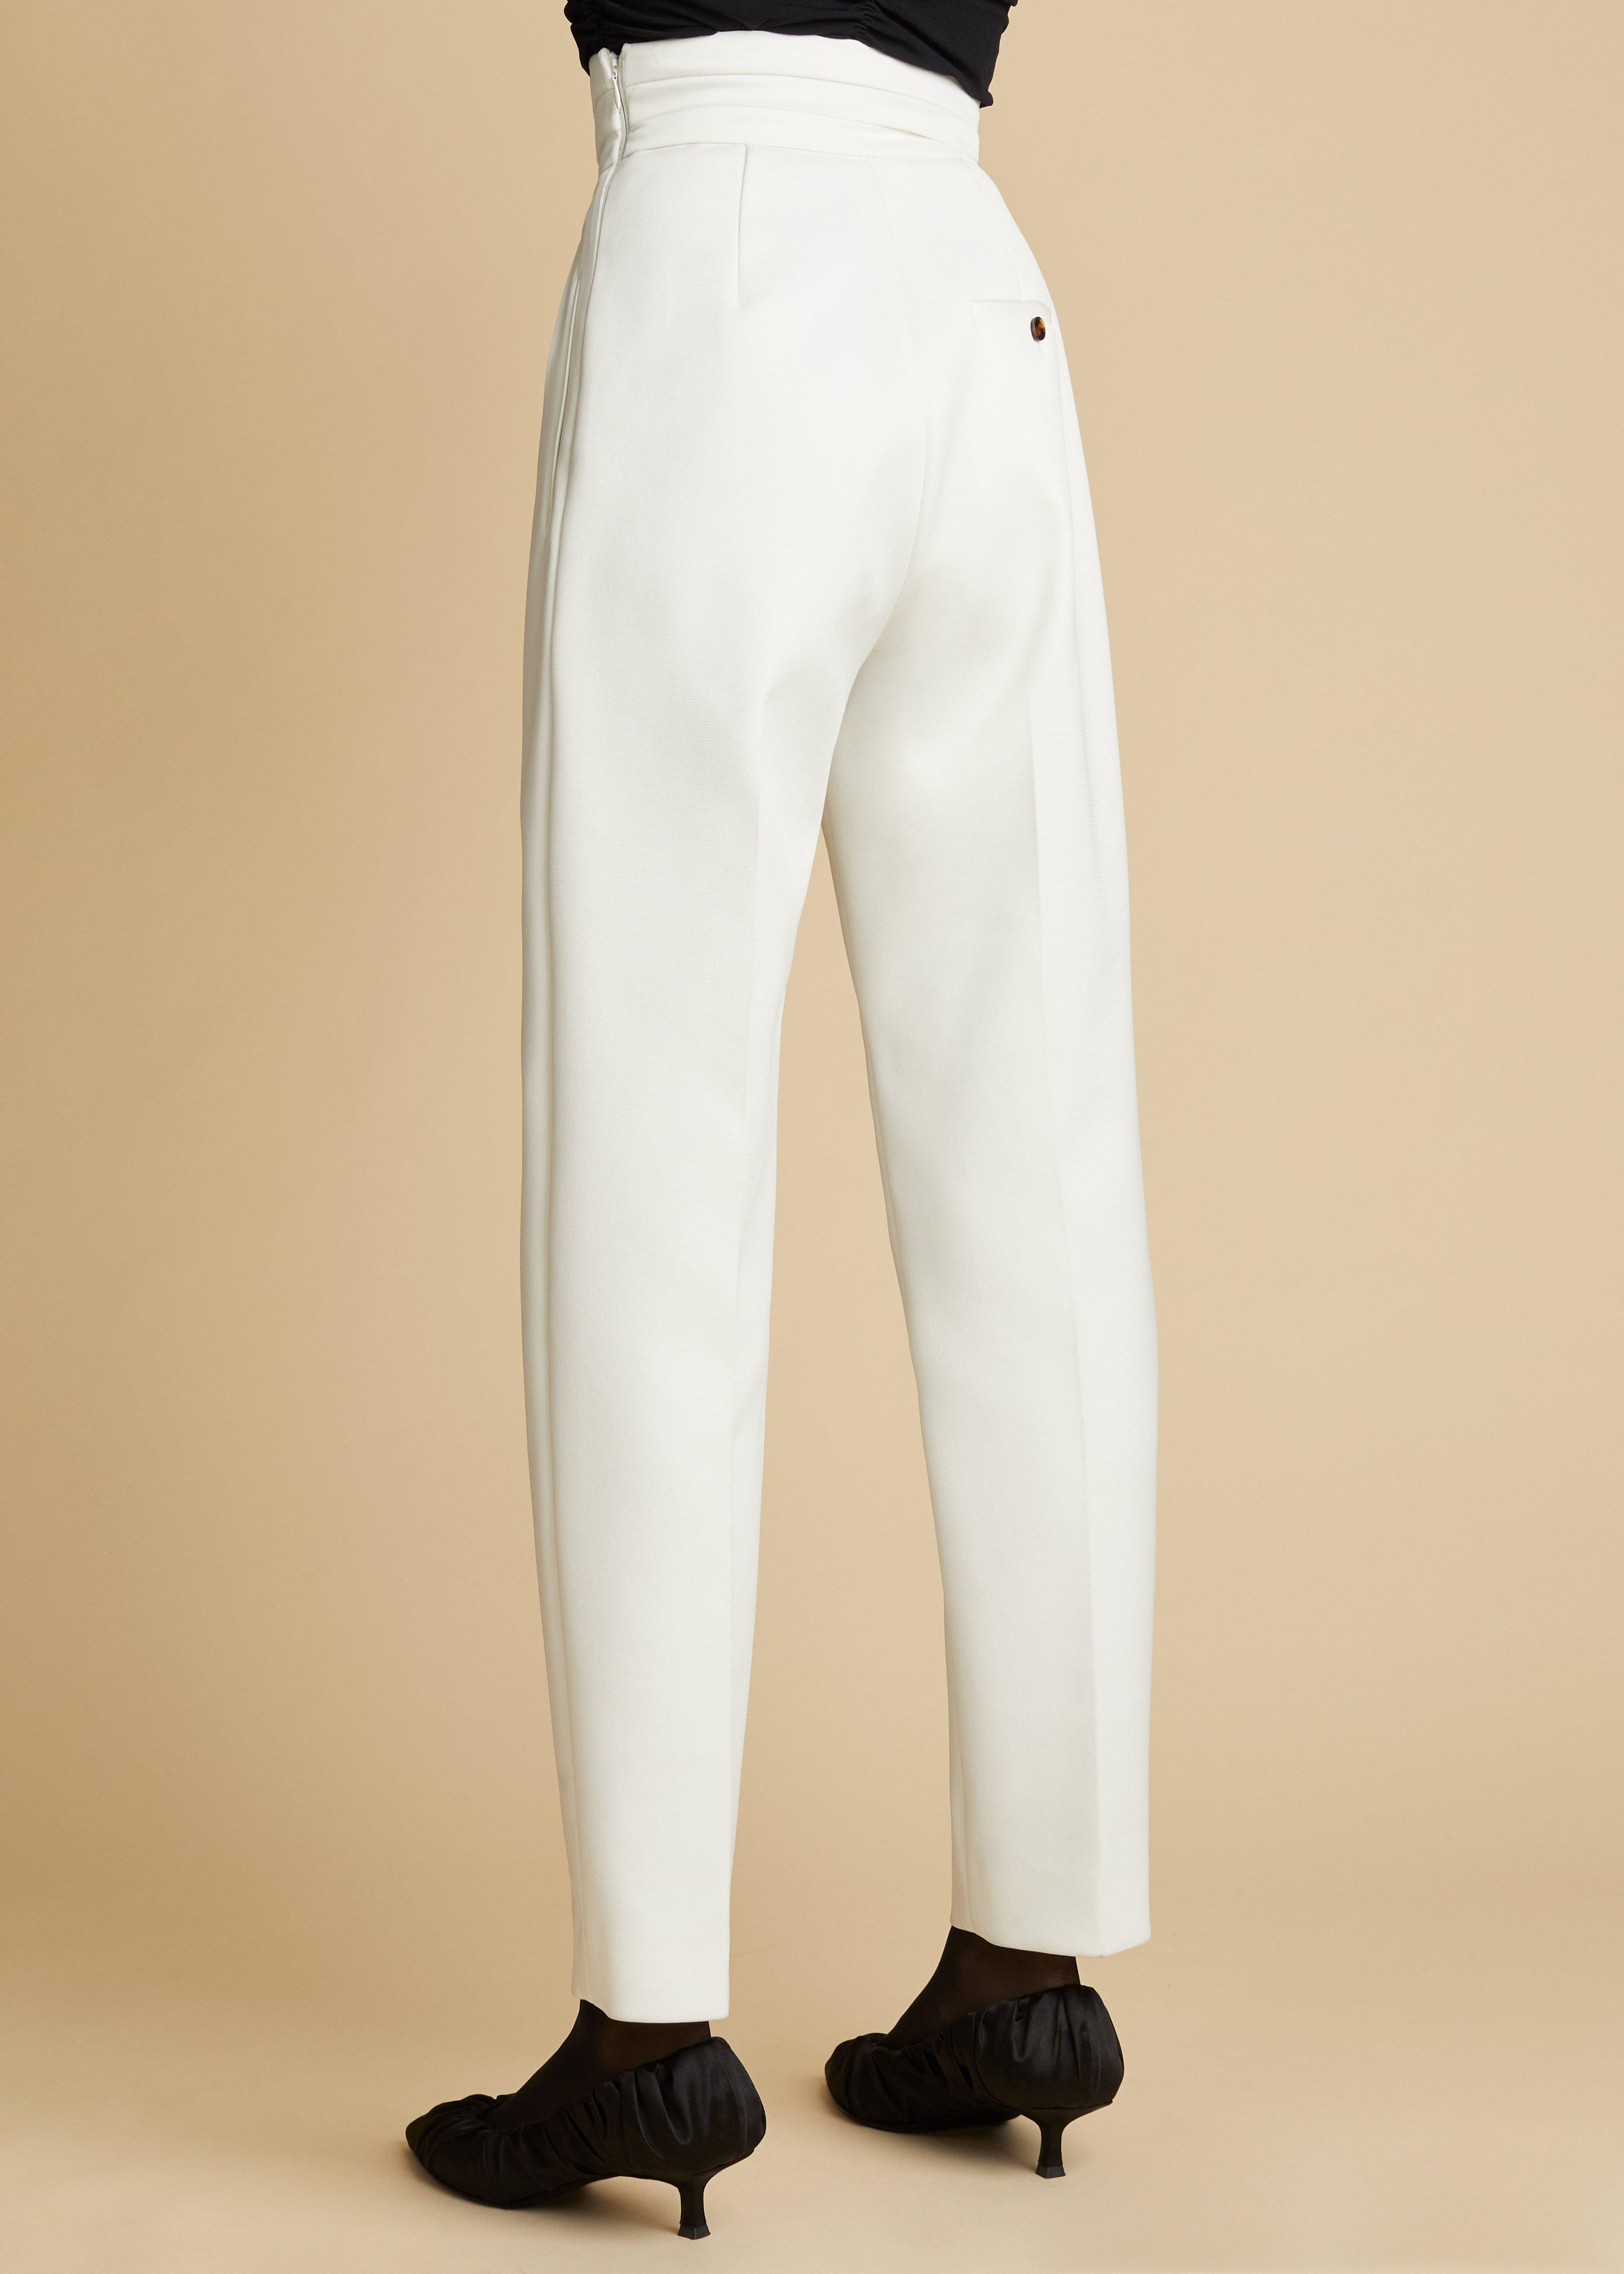 The Connelly Pant in Ivory 2